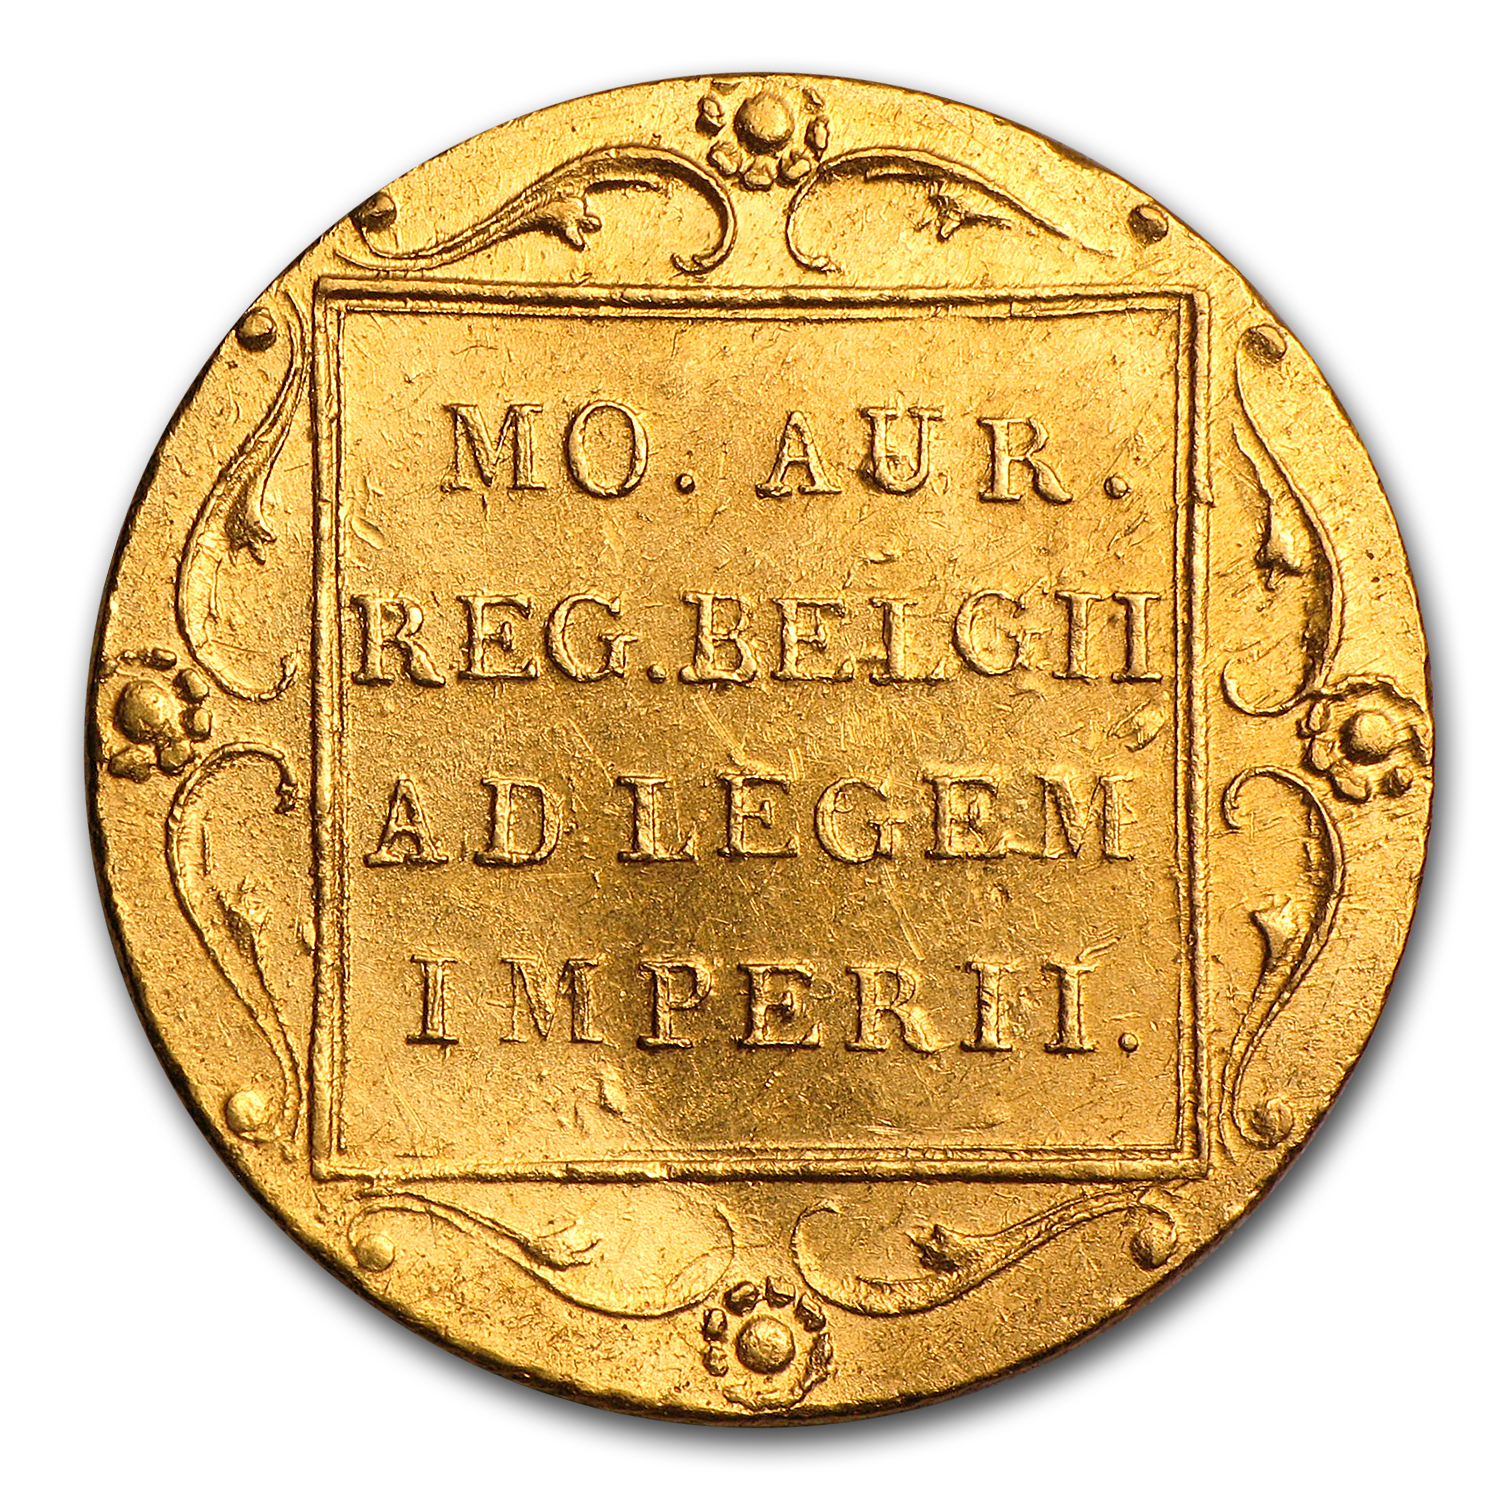 Netherlands 1 Ducat Gold Coin (BU, Random Dates)